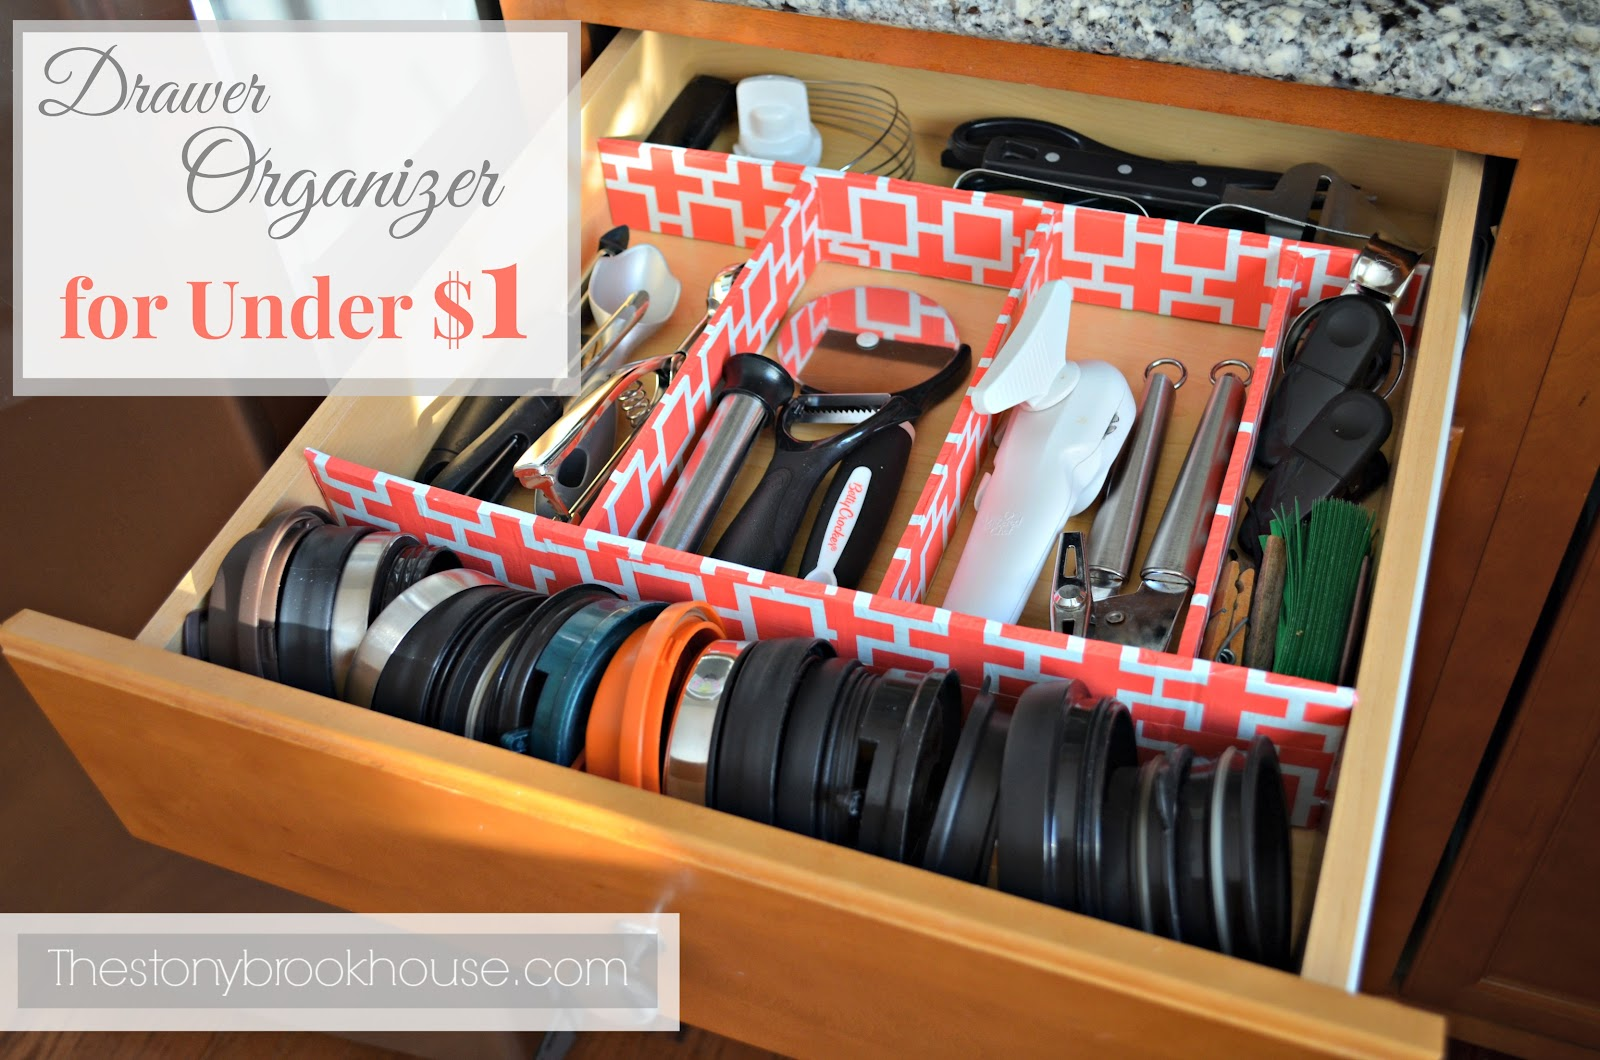 Kitchen Drawer Organizer Kitchen Utensil Drawer Organizer For Under 1 The Stonybrook House